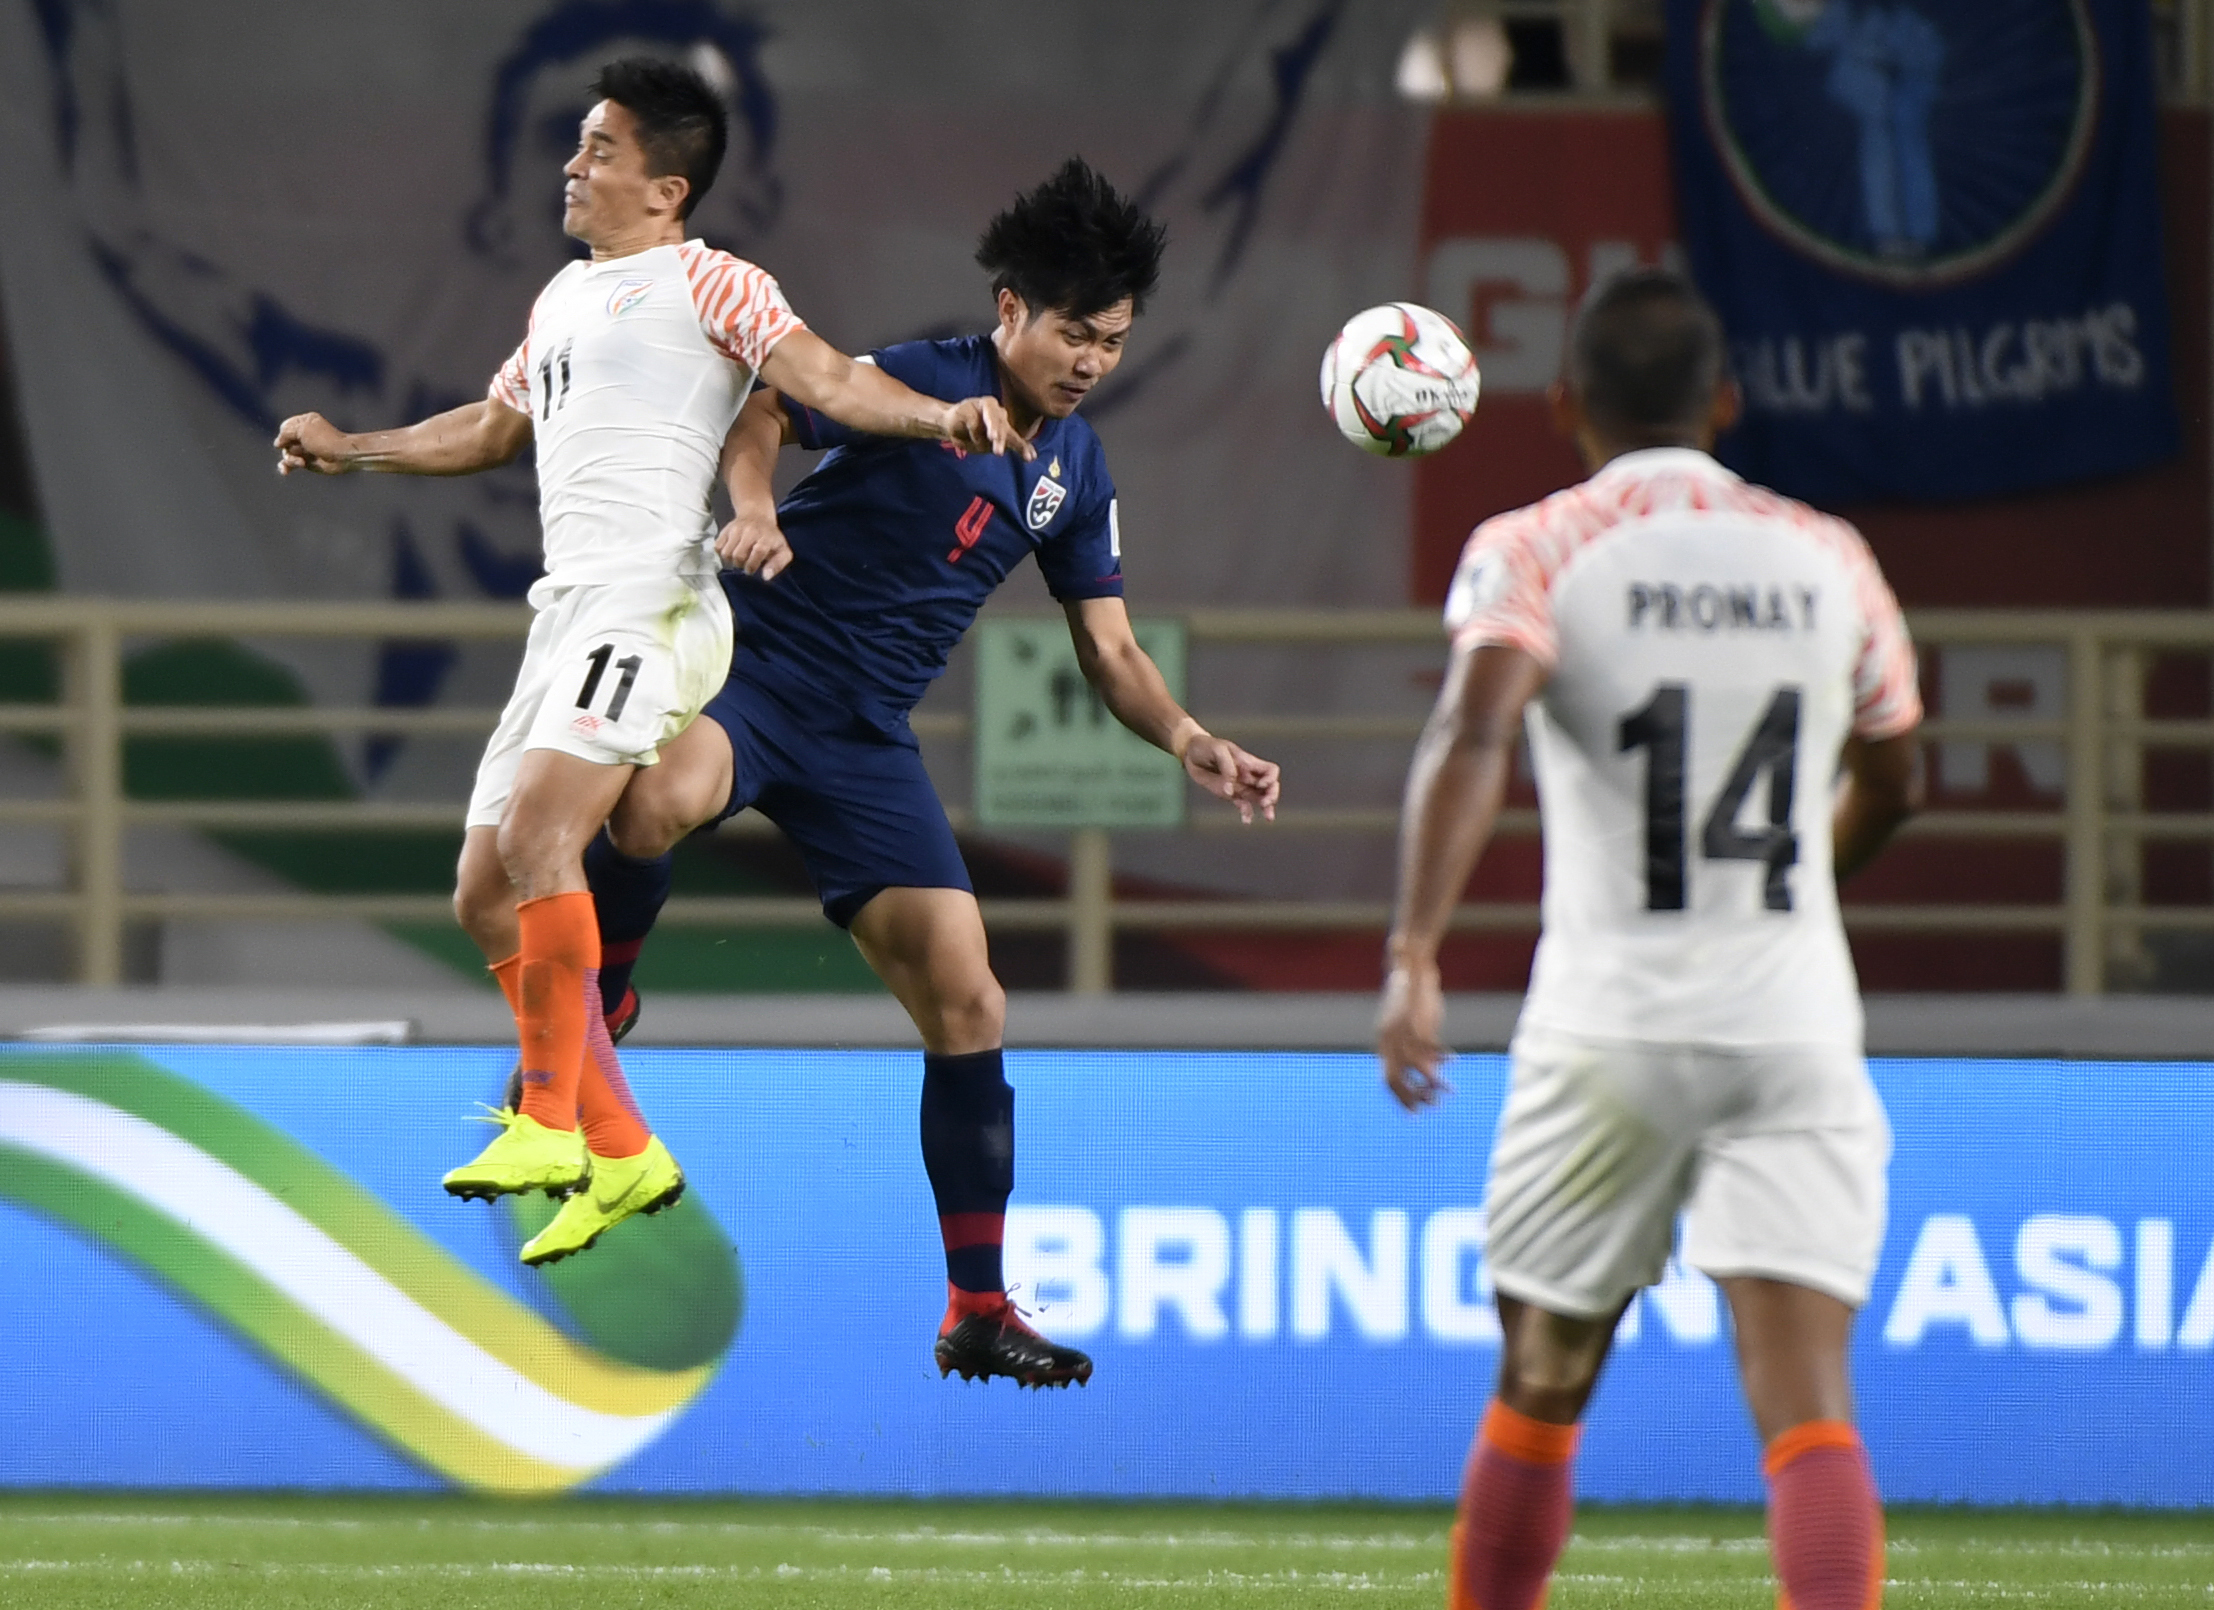 Sunil Chhetri's brace inspired the Blue Tigers to a victory over the War Elephants